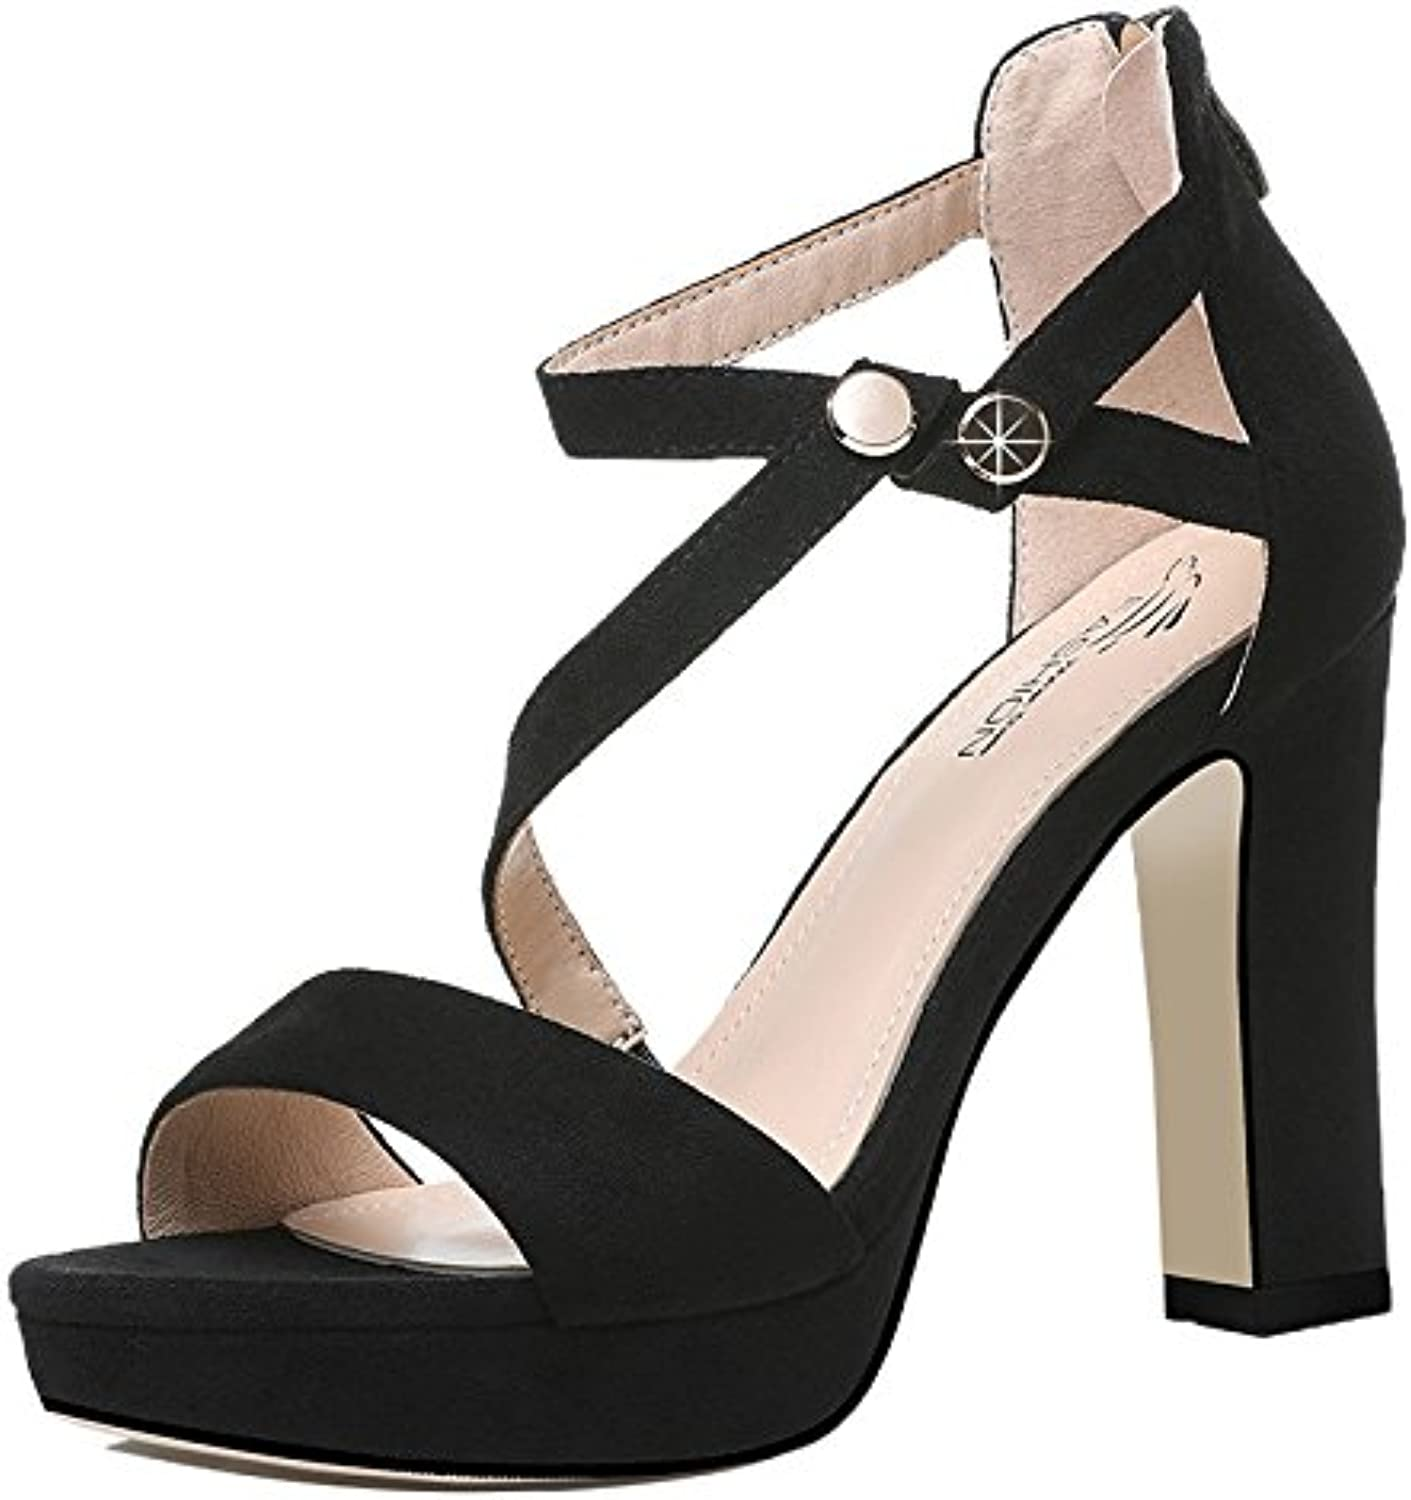 Rough Heel Sandals, Ladies' Summer Heels, high Heels, Fashion Ties, Single shoes.